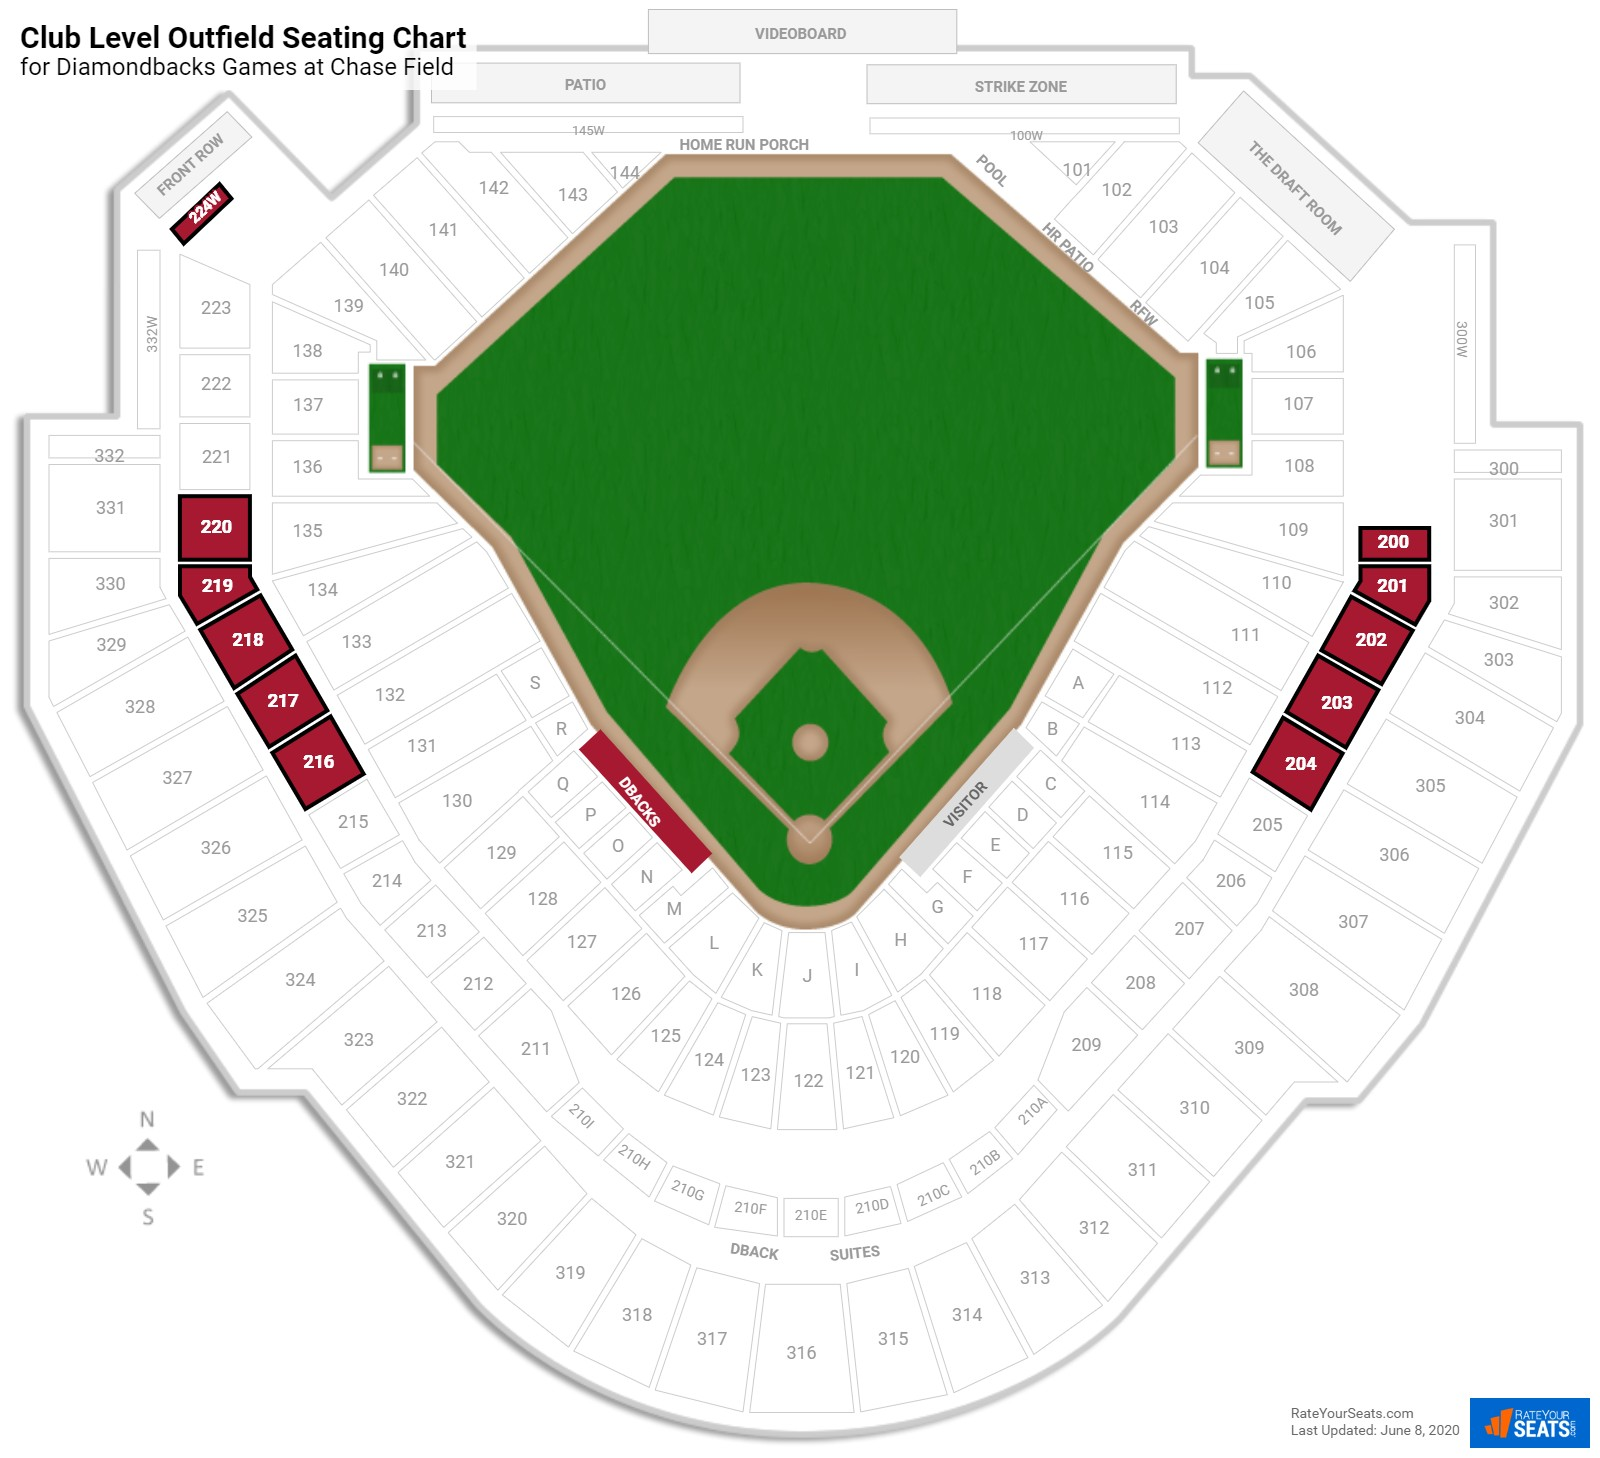 Chase Field Club Level Outfield seating chart